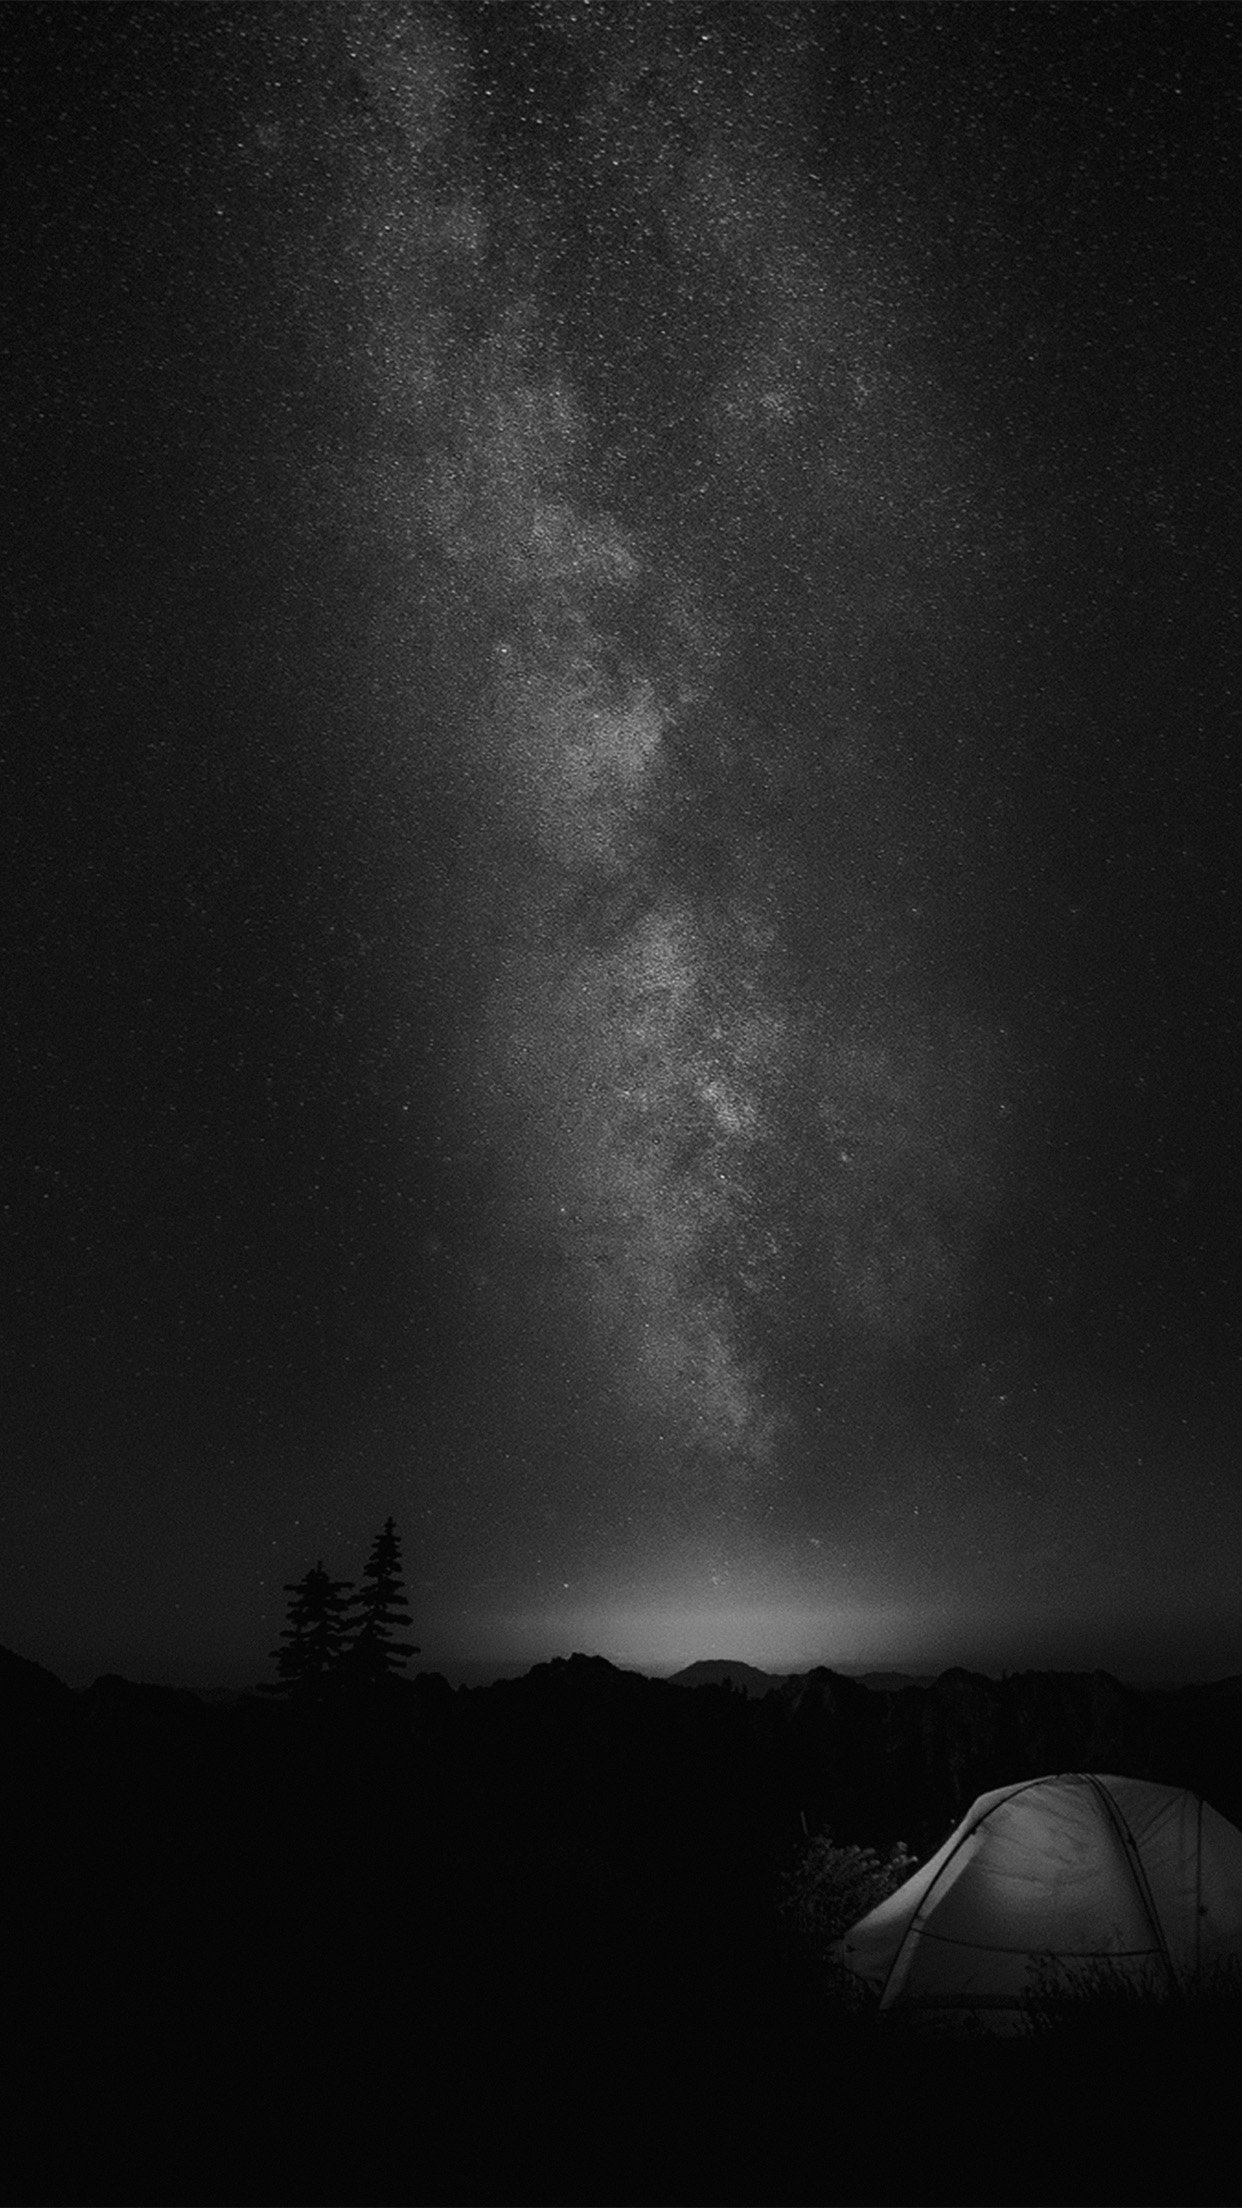 Camping Night Star Galaxy Milky Sky Dark Space Bw Dark Iphone Wallpaper 4k Black 1242x2208 Wallpaper Teahub Io